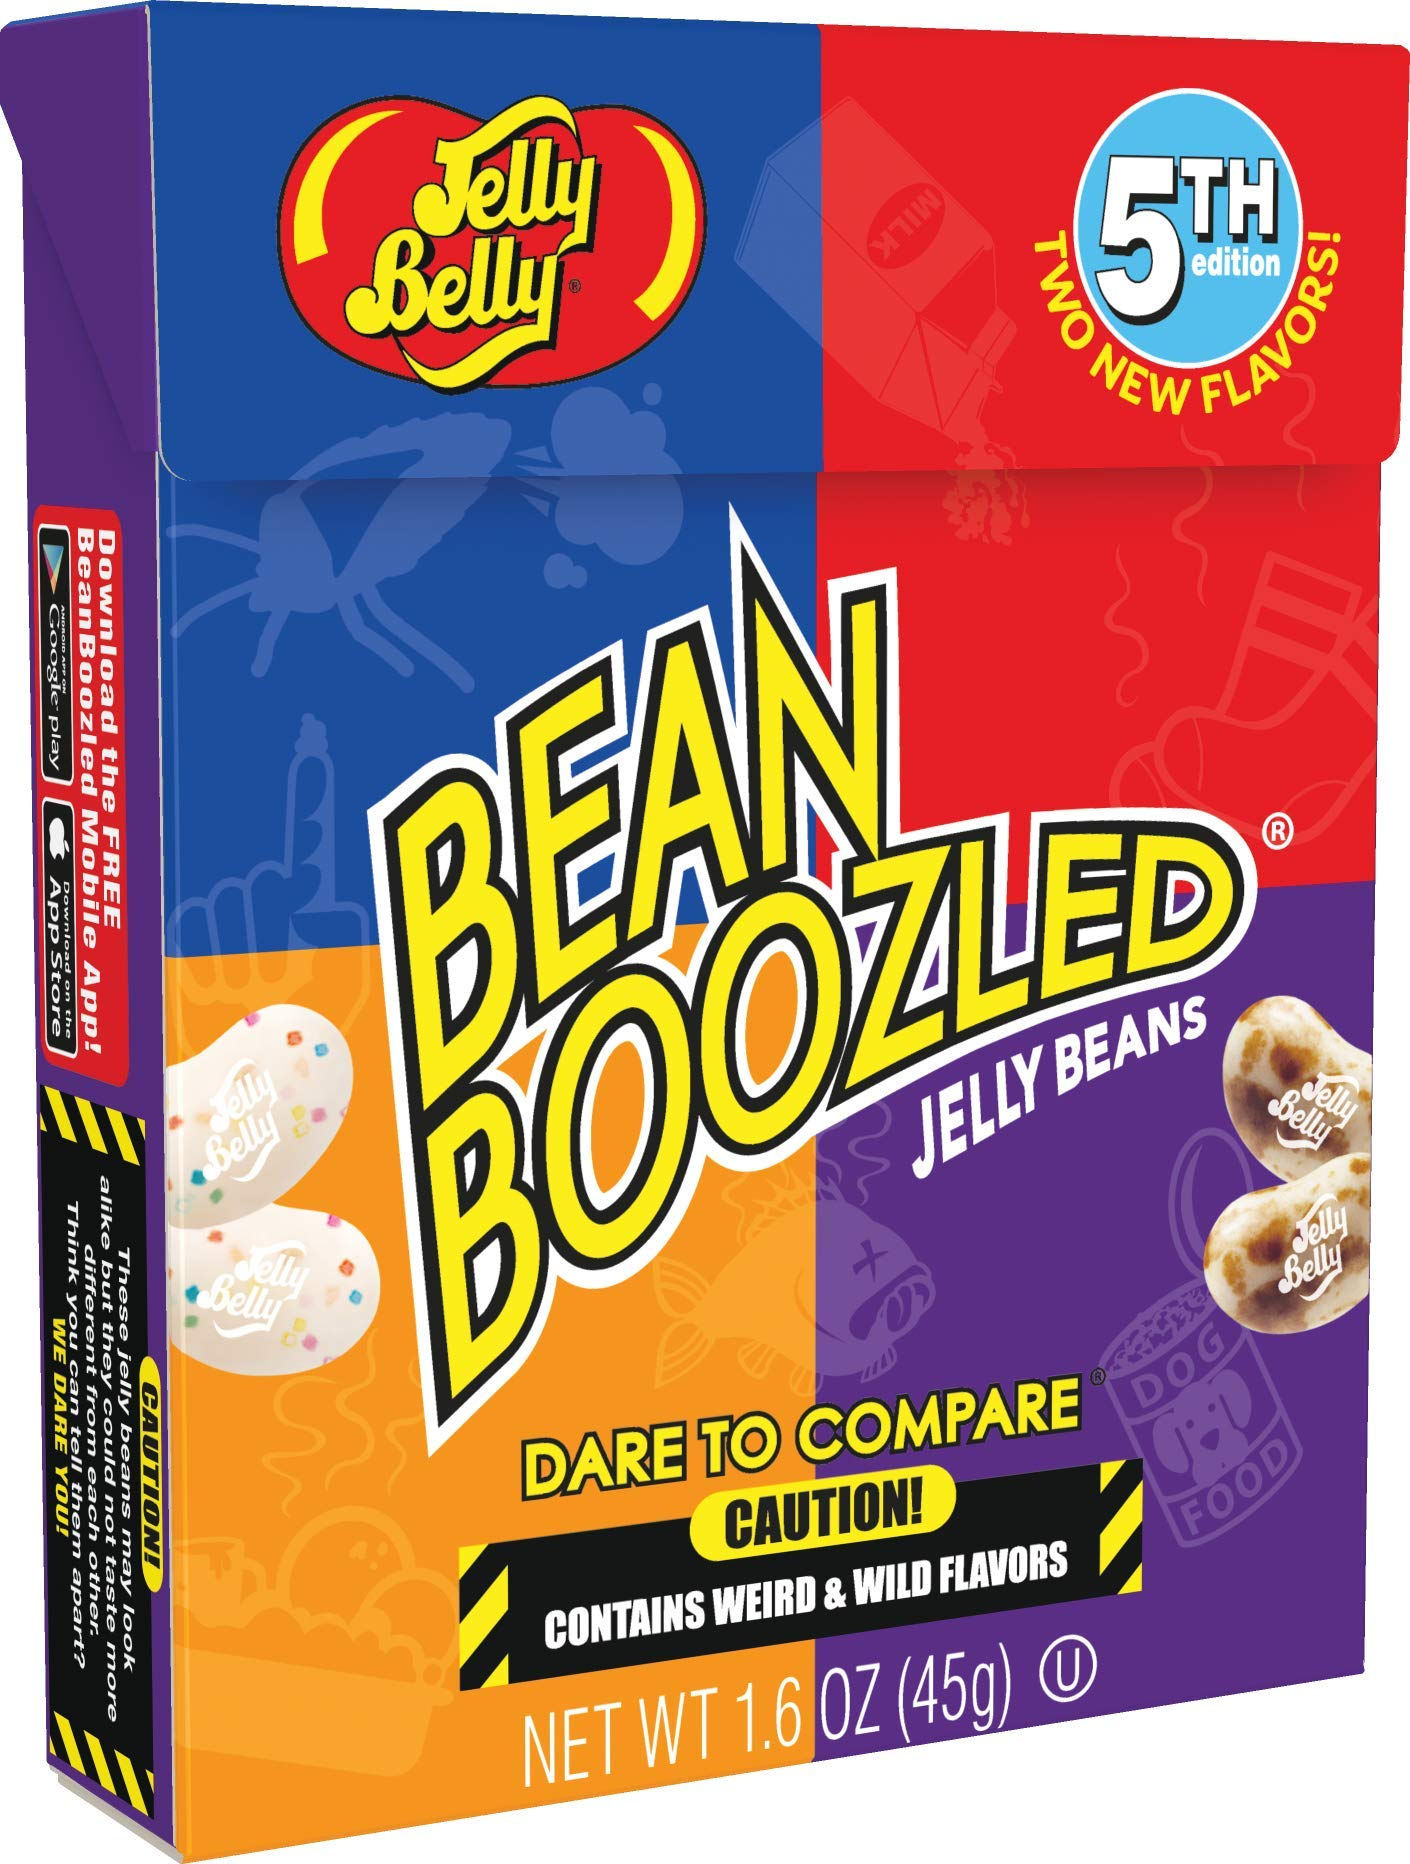 Jelly Belly Beanboozled Mystery Bean Jelly Belly Set With Refill Box by Jelly Belly (Image #2)